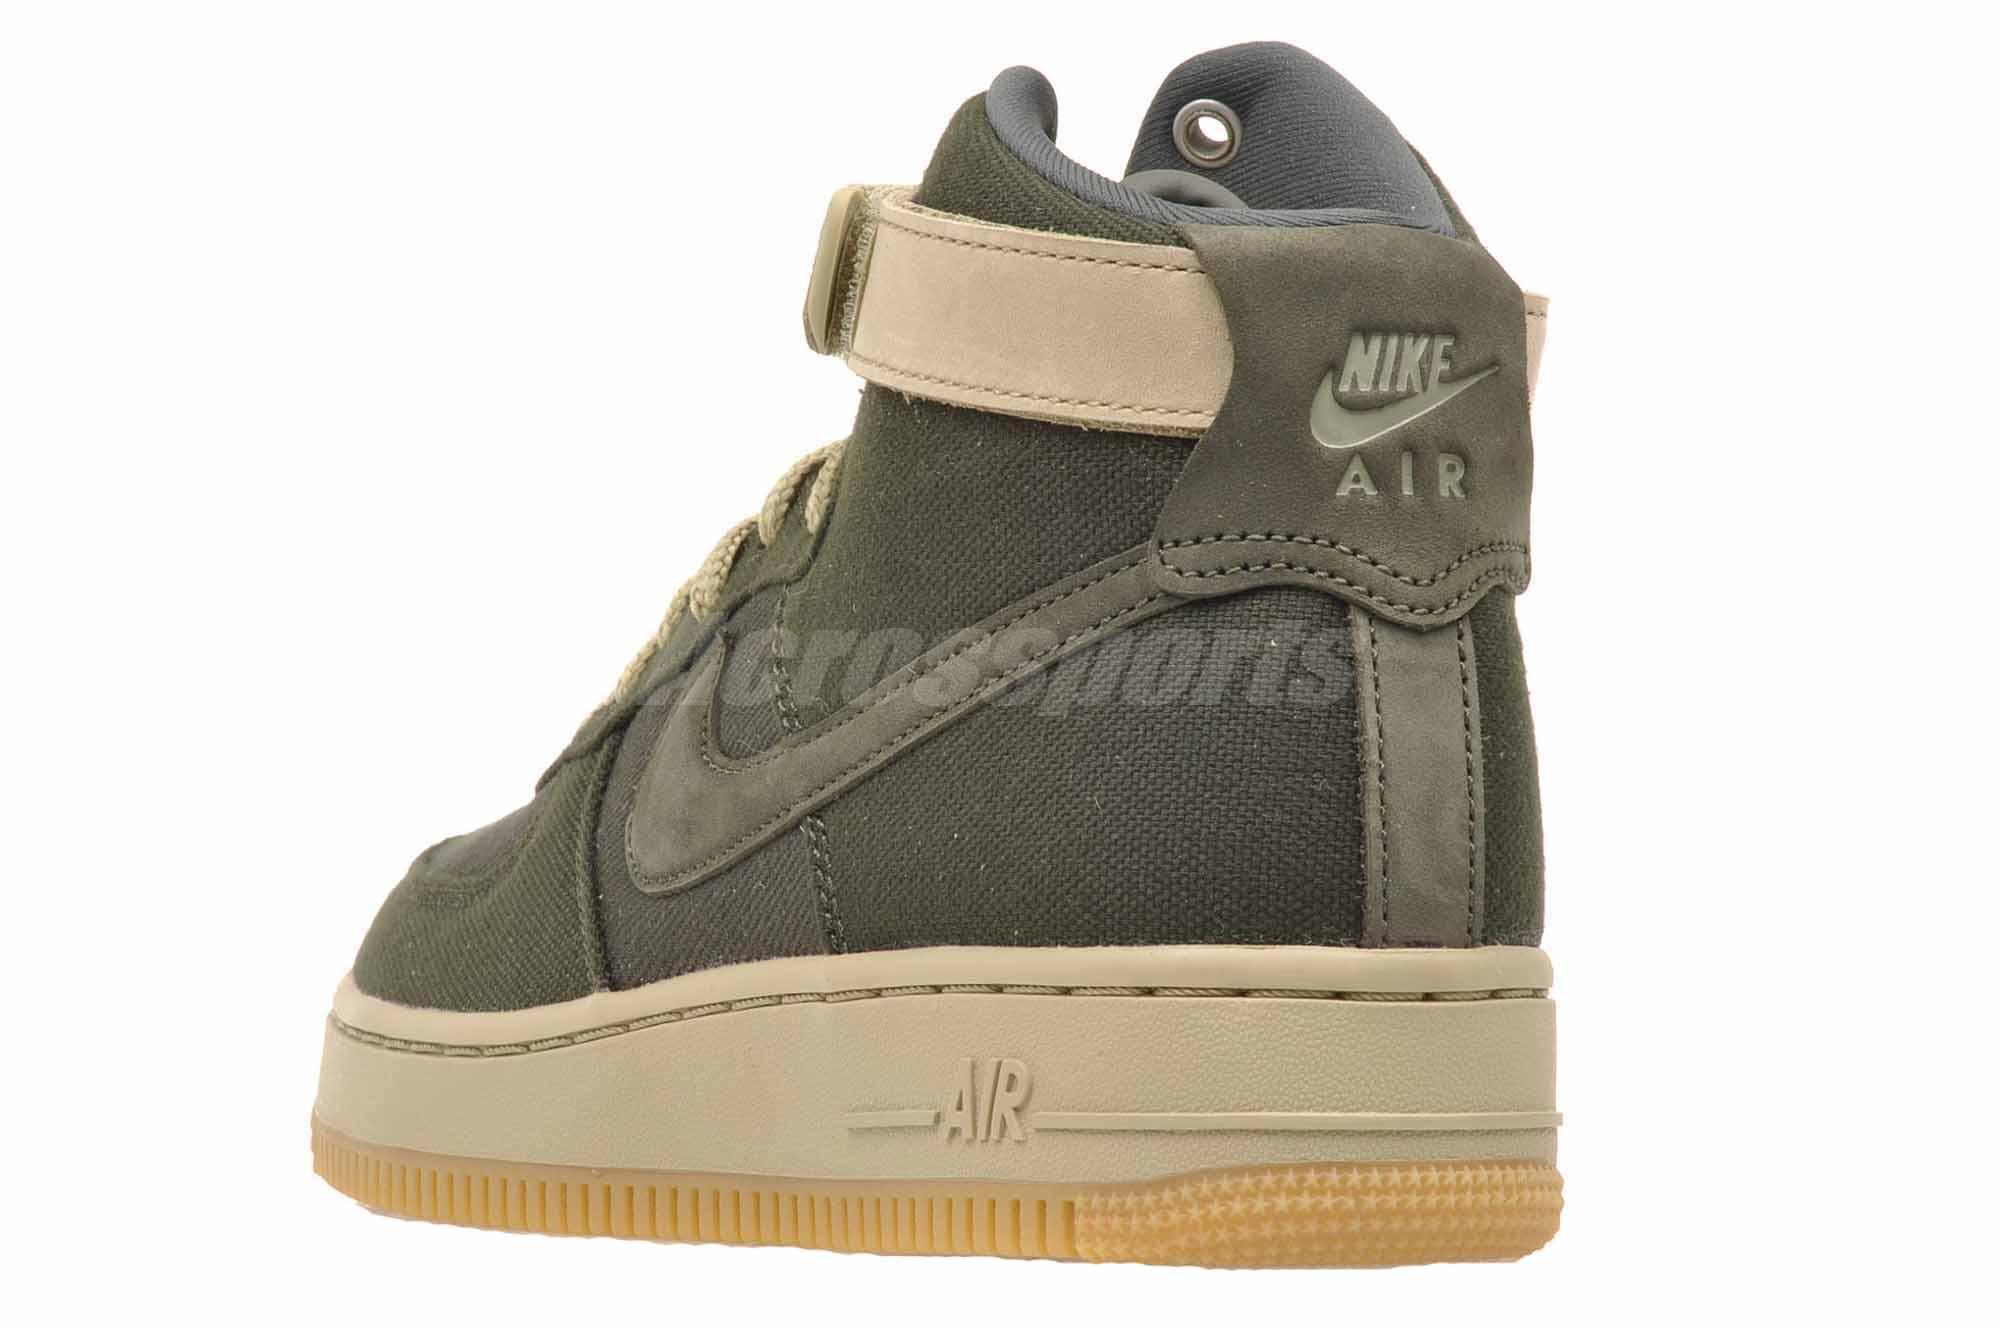 Details about Nike Wmns Air Force 1 HI Utility Womens Casual Shoes Sequoia  Green AJ2775-300 b87ac0375